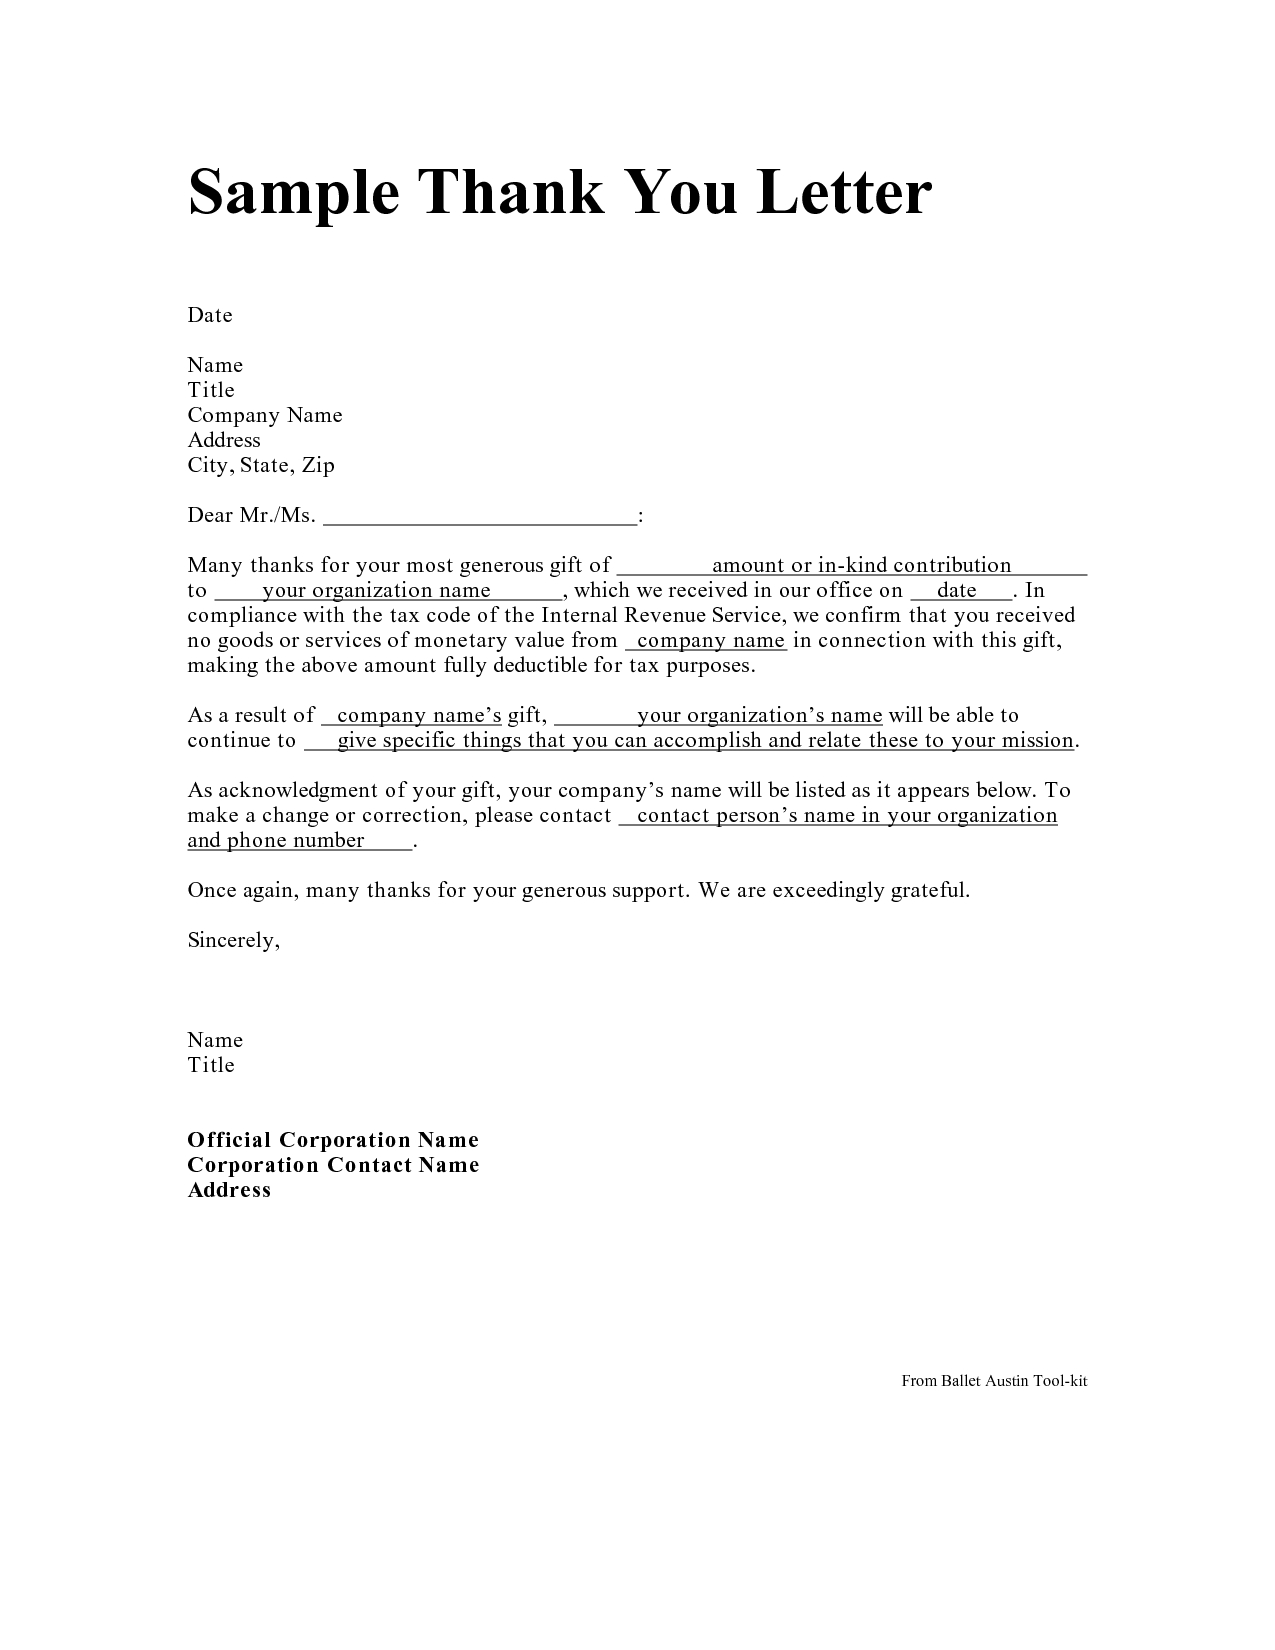 Business Valuation Engagement Letter Template - Personal Thank You Letter Personal Thank You Letter Samples